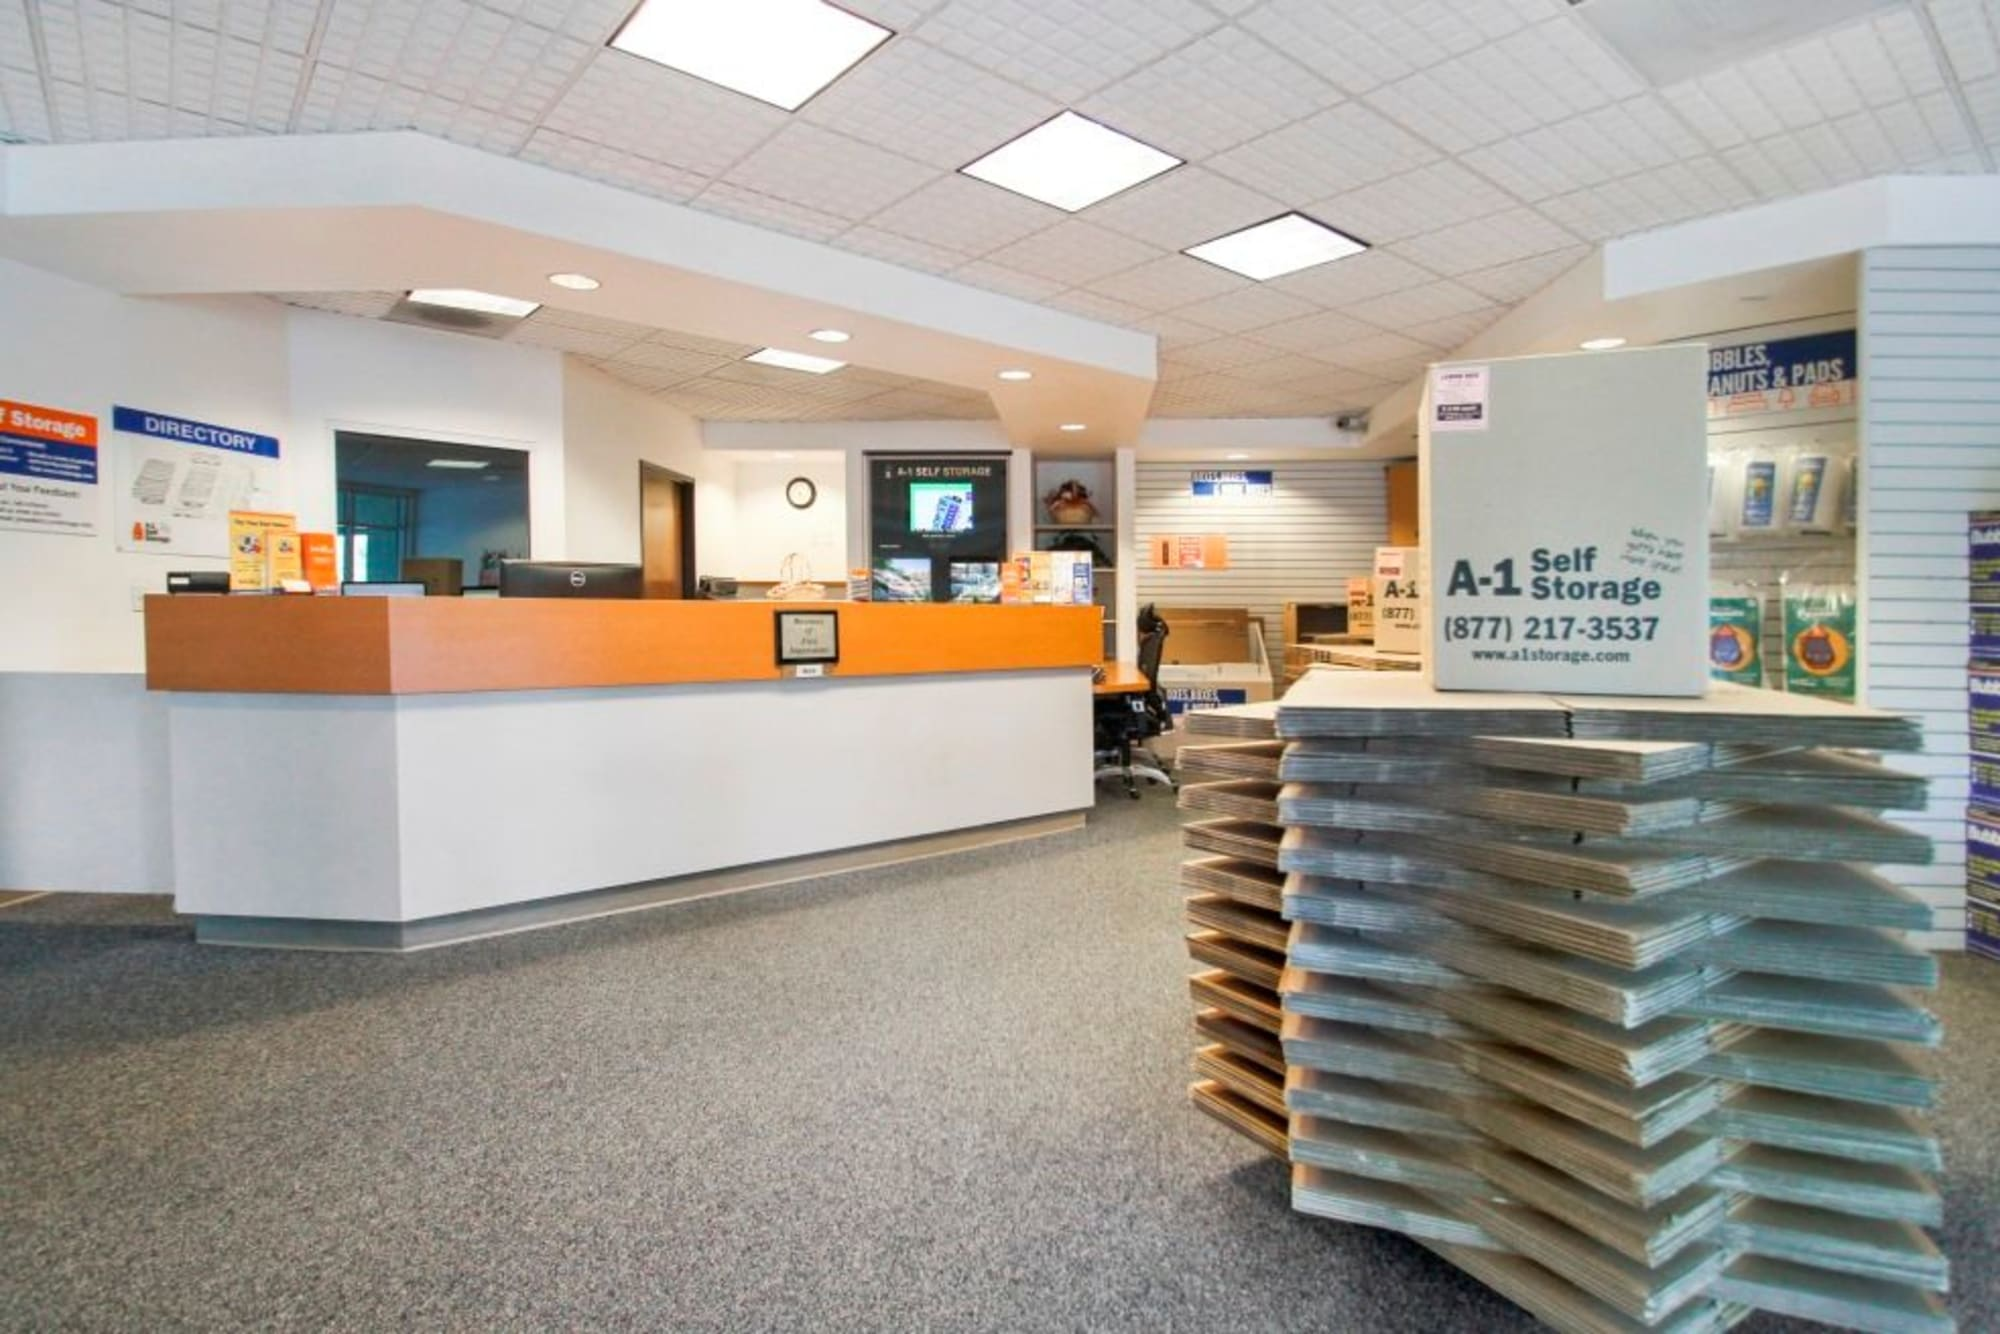 The leasing office and boxes at A-1 Self Storage in Concord, California